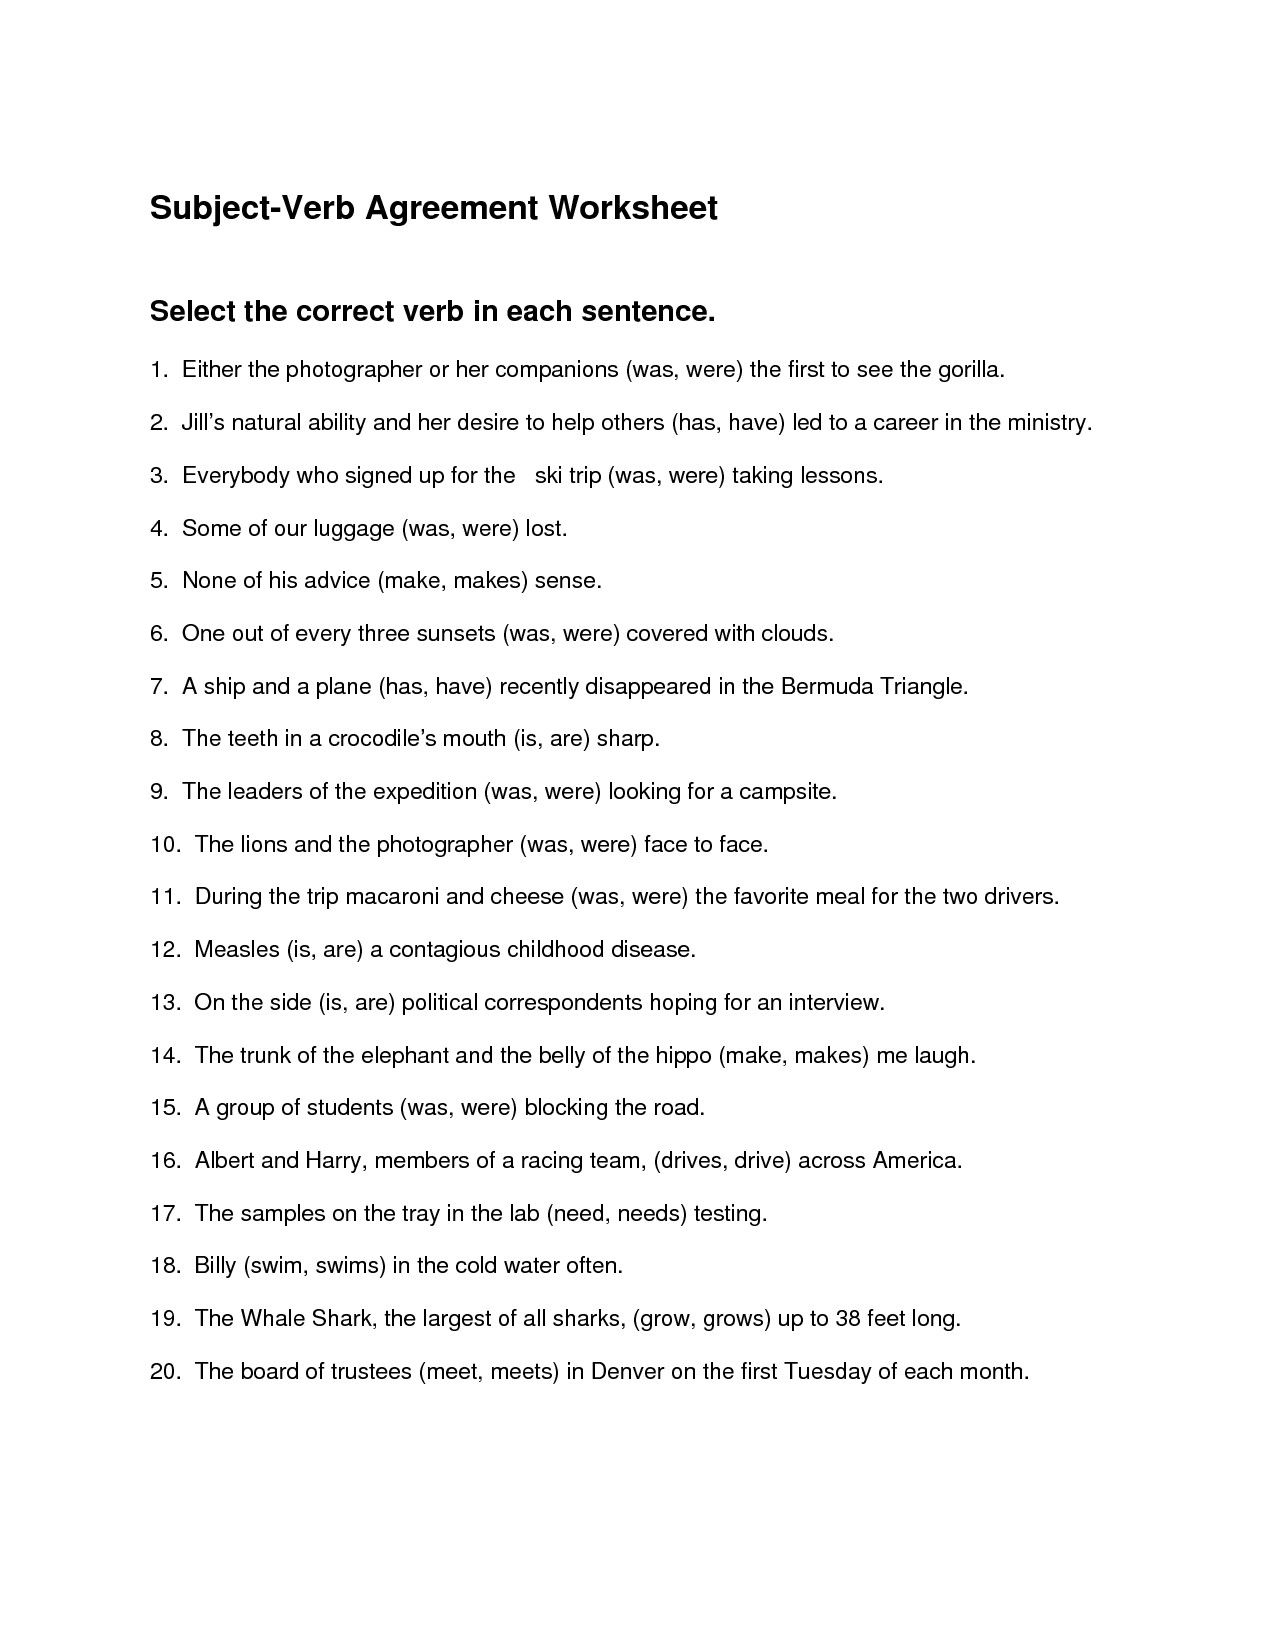 Worksheets Verb Worksheets 5th Grade verb worksheets 5th grade id0 worksheet parts of speech worksheet